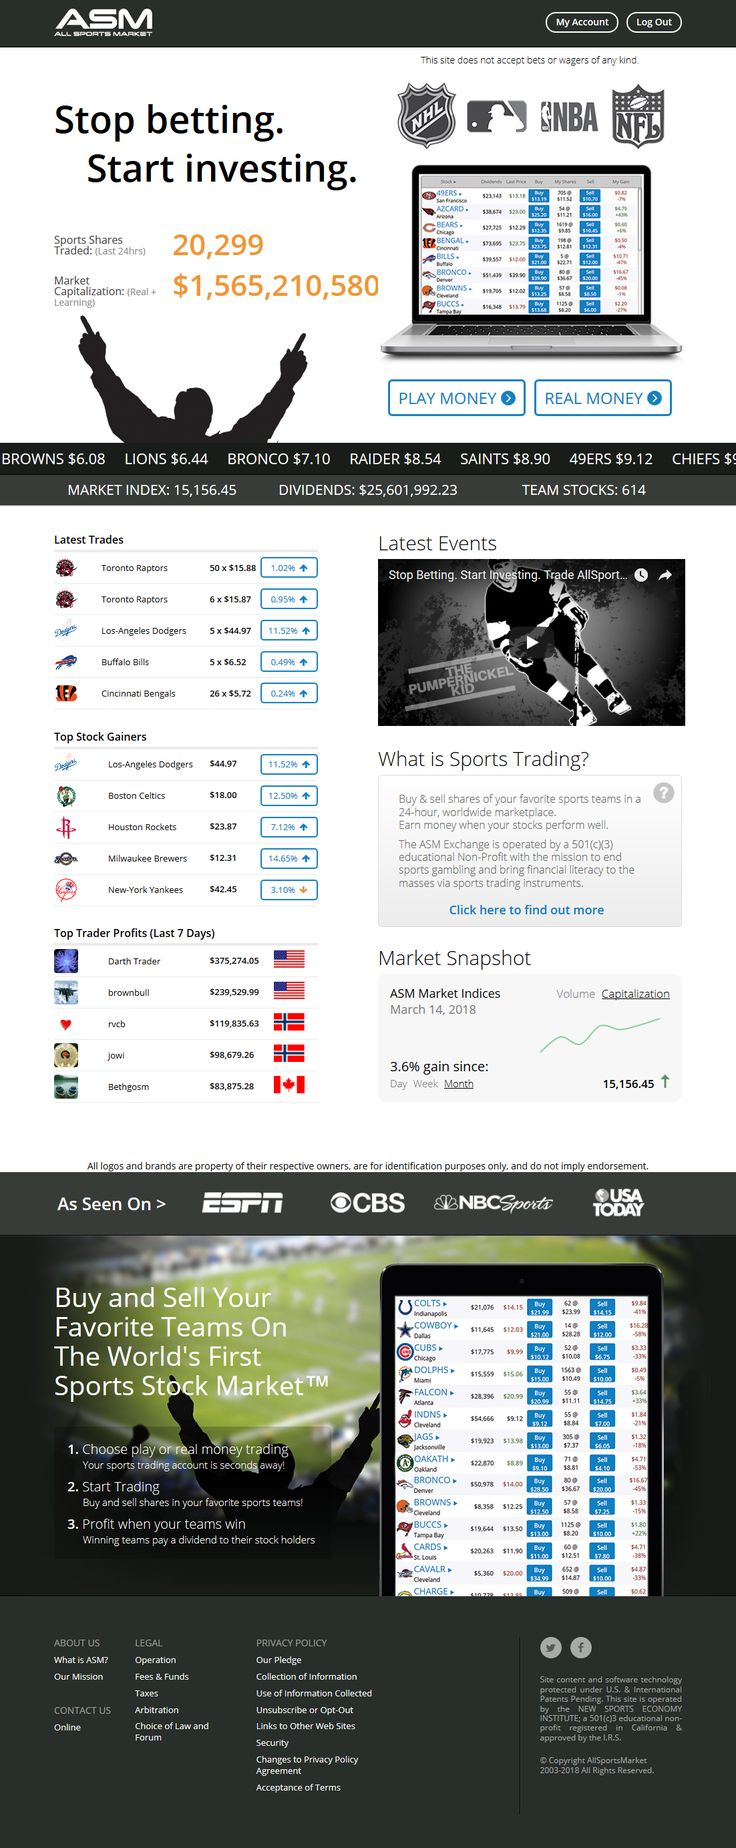 Buy & sell shares of your favorite sports teams in a 24-hour, worldwide marketplace. Earn money when your stocks perform well.